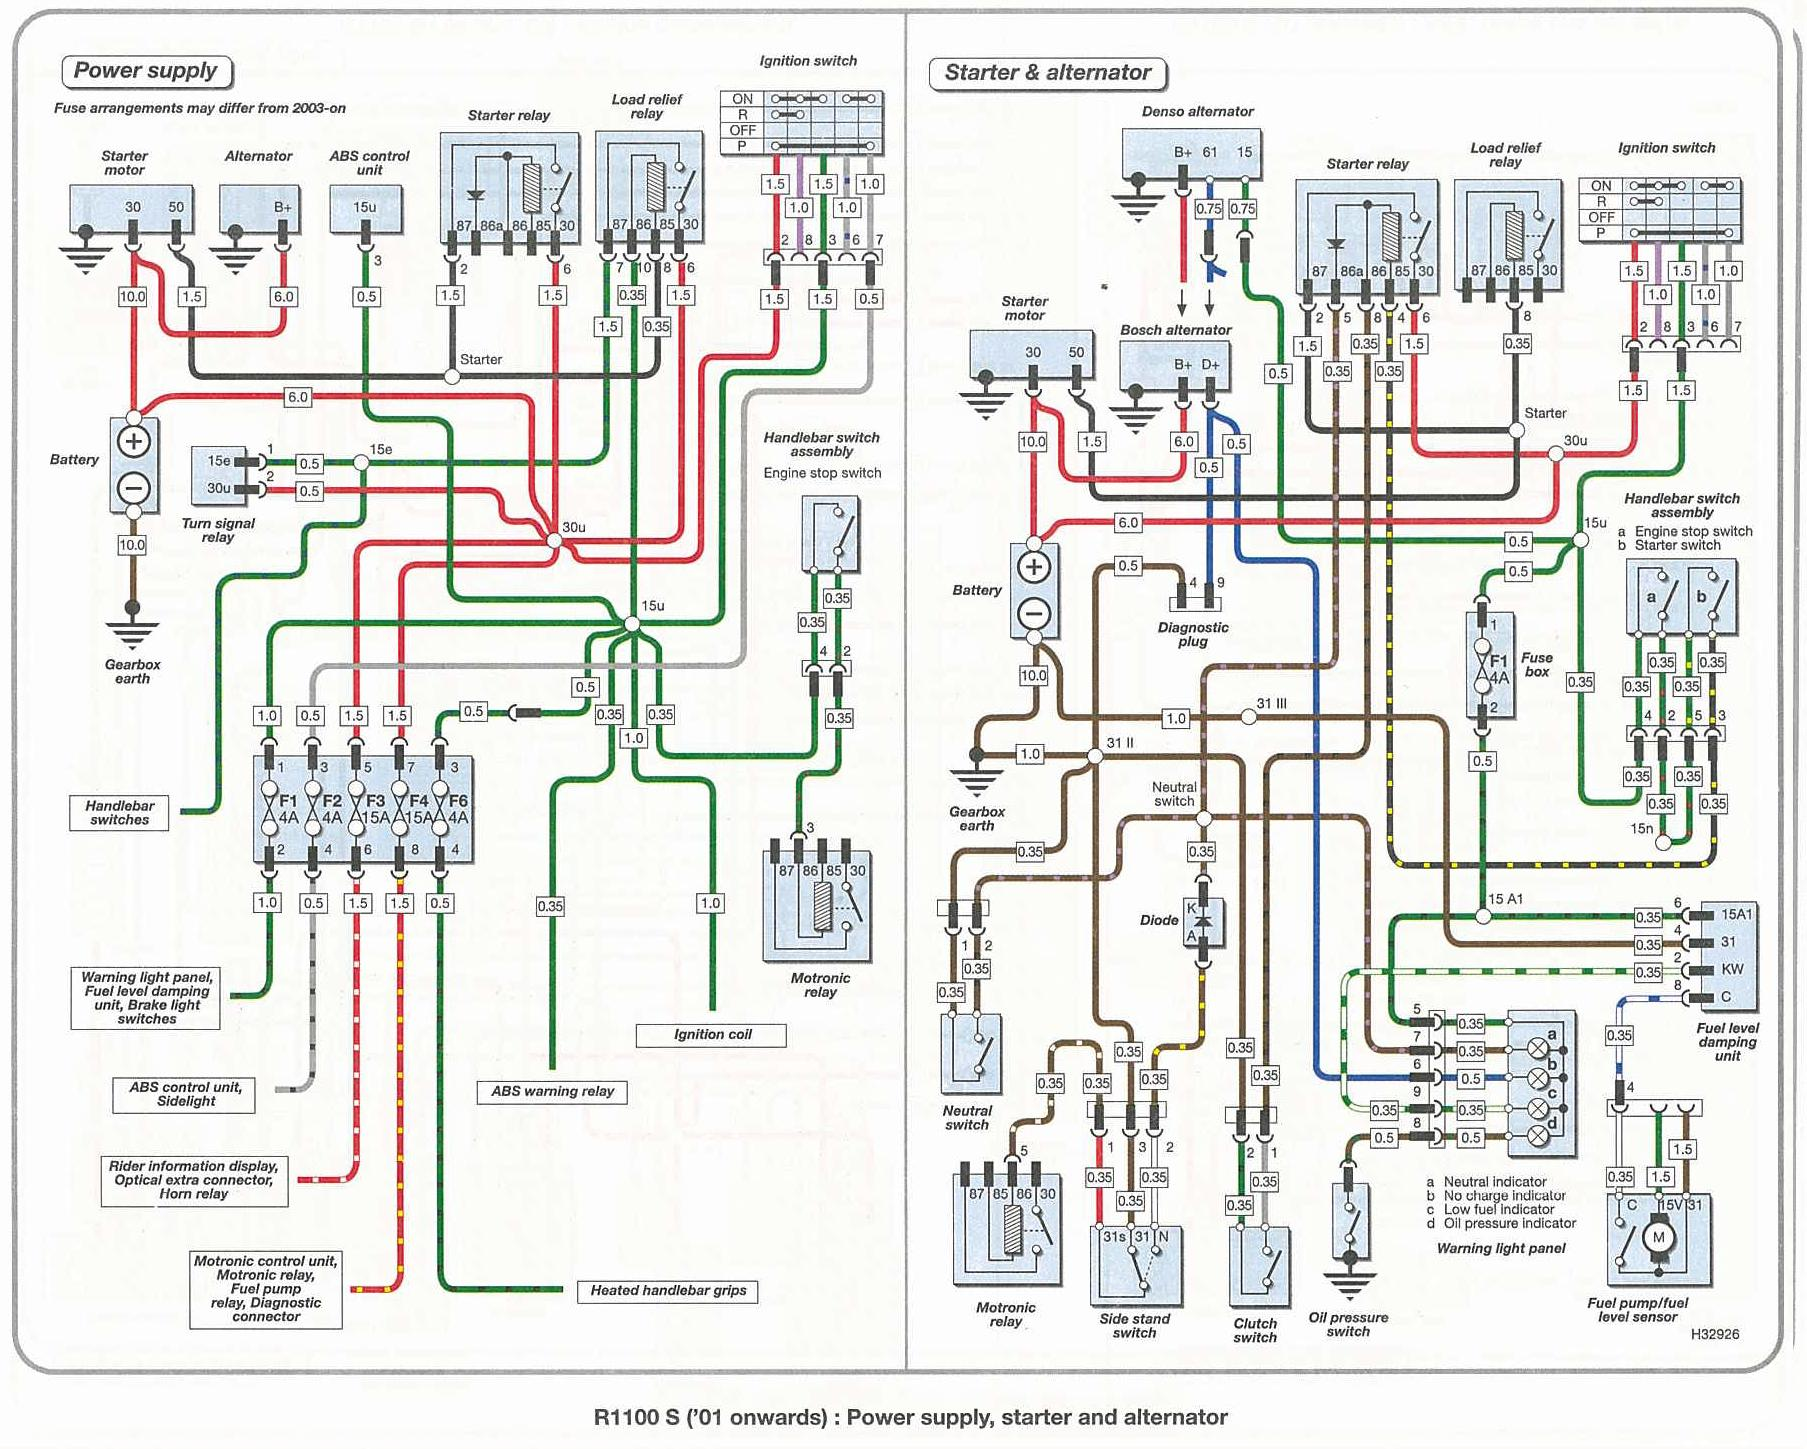 wiring05 bmw r1100s wiring diagrams bmw wiring diagrams at reclaimingppi.co